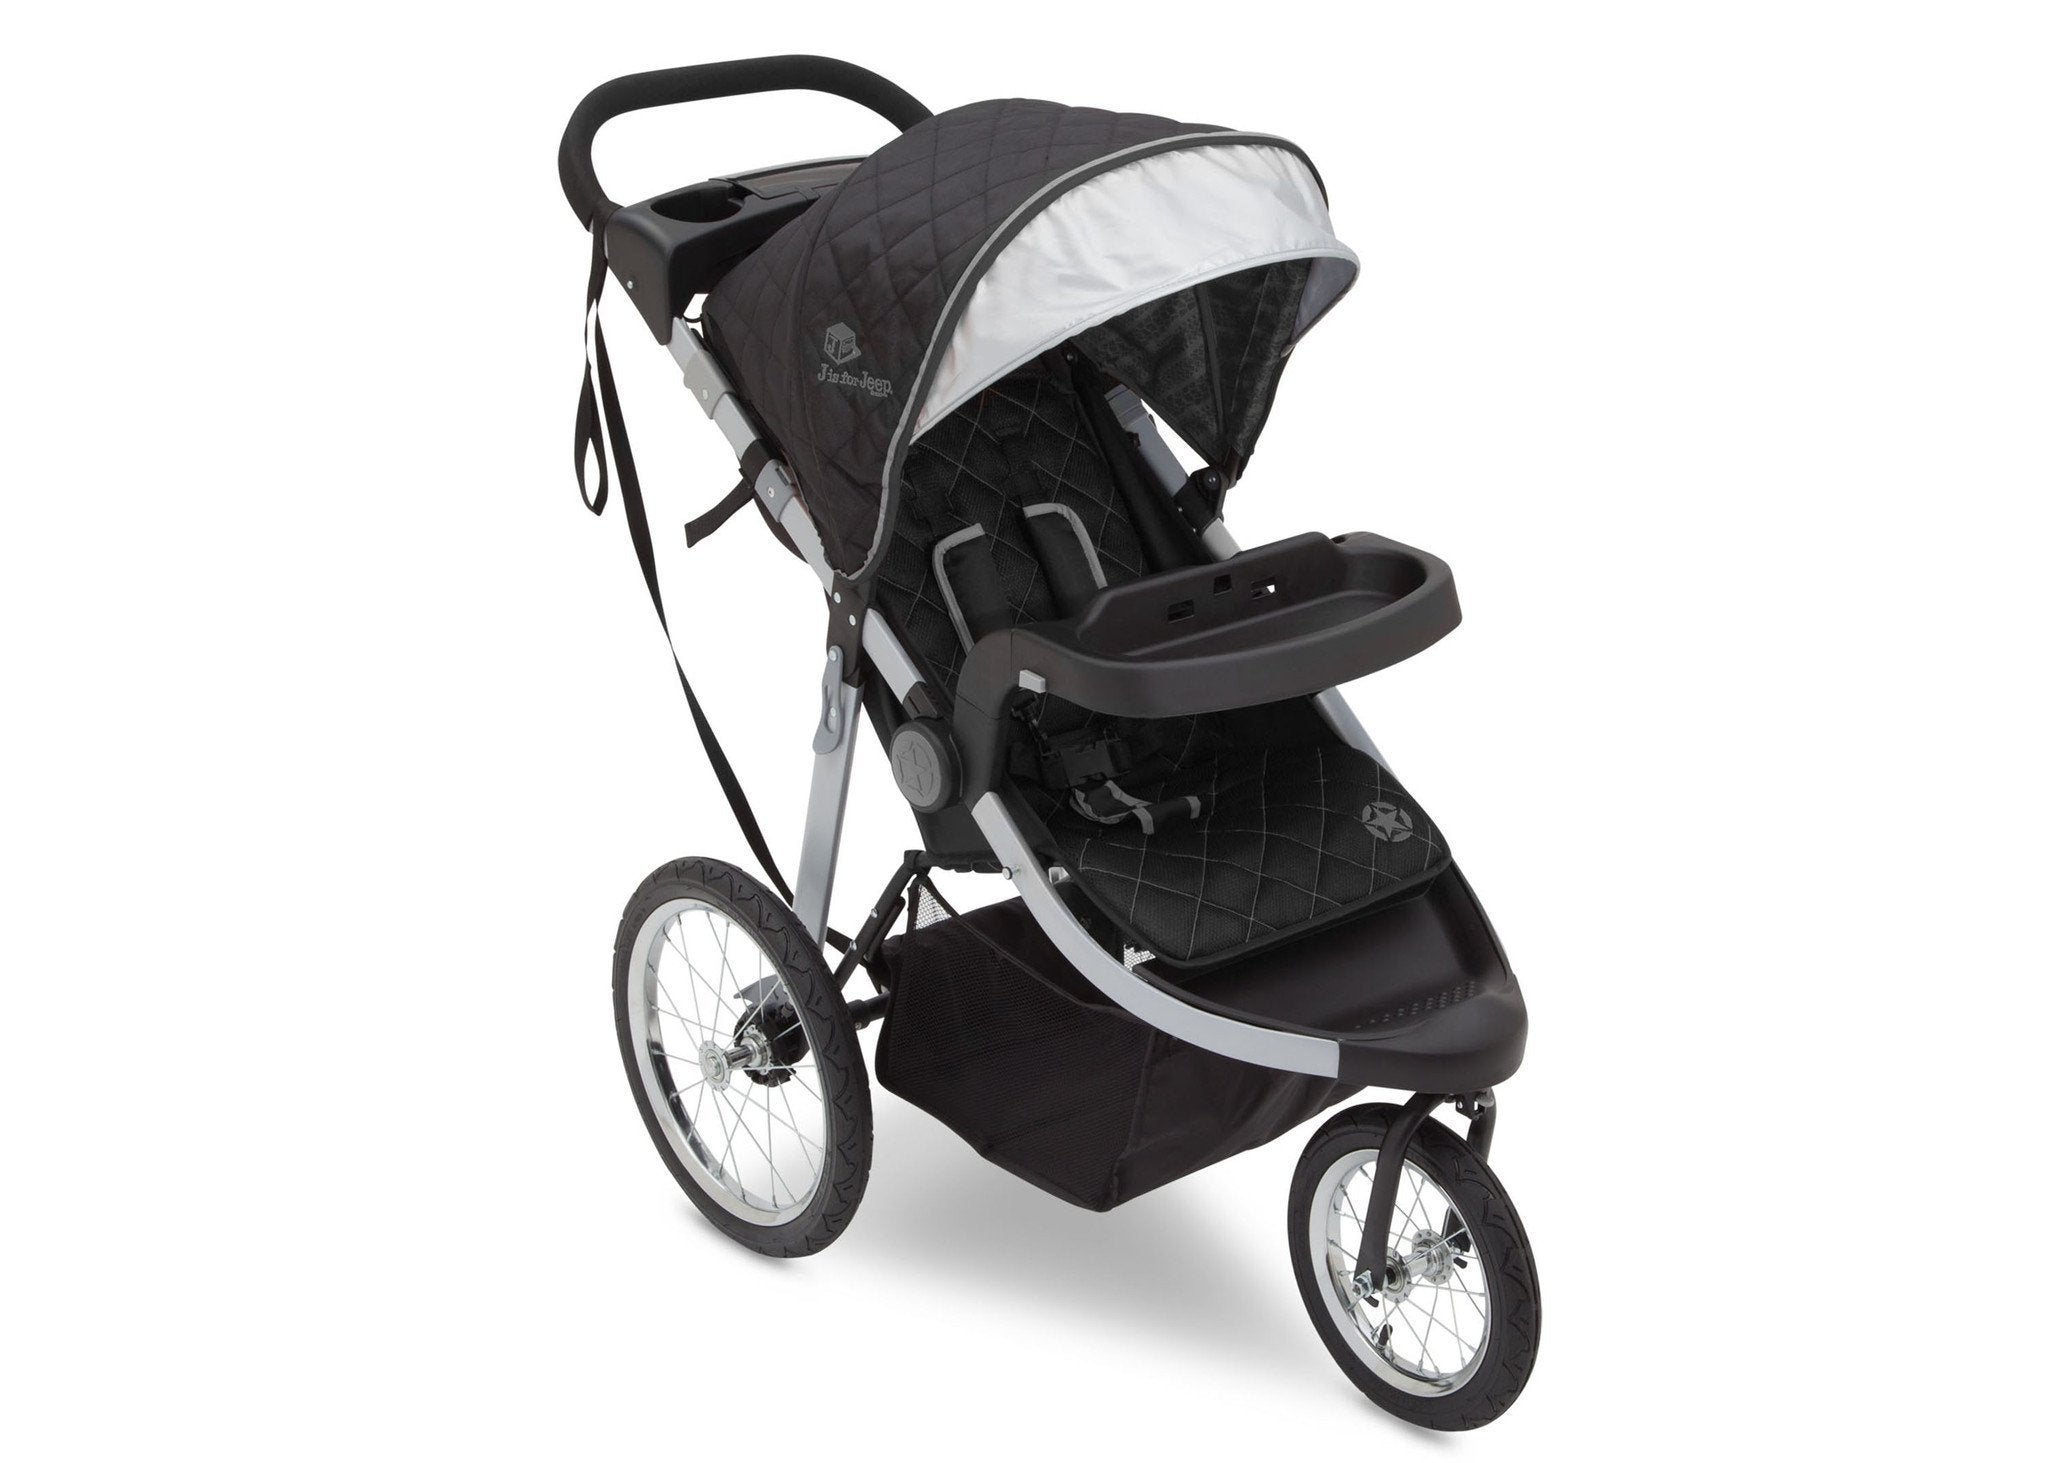 Delta Children J is for Jeep Brand Trek Grey Tonal (0261) Cross Country All Terrain Jogging Stroller Full Left Side View a1a